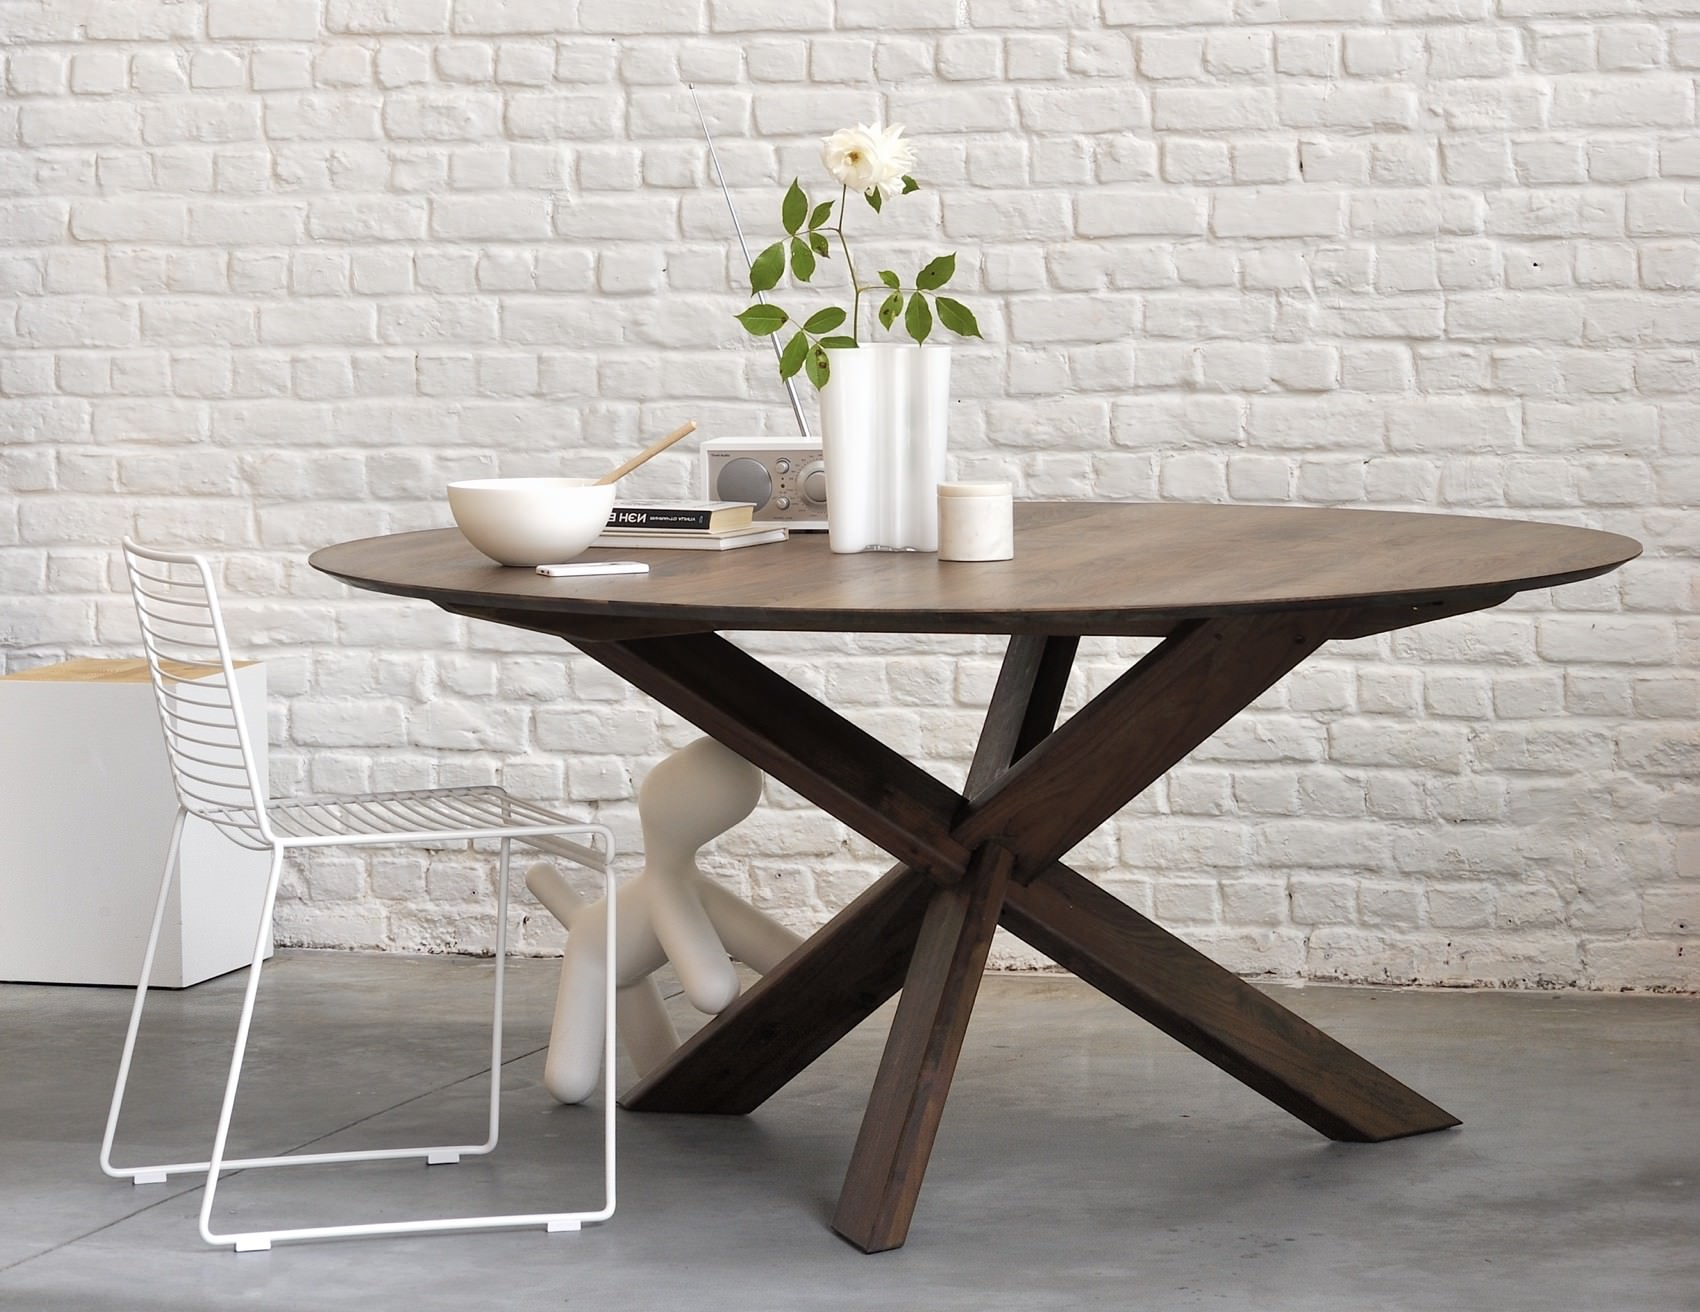 ethnicraft-circle-dining-table